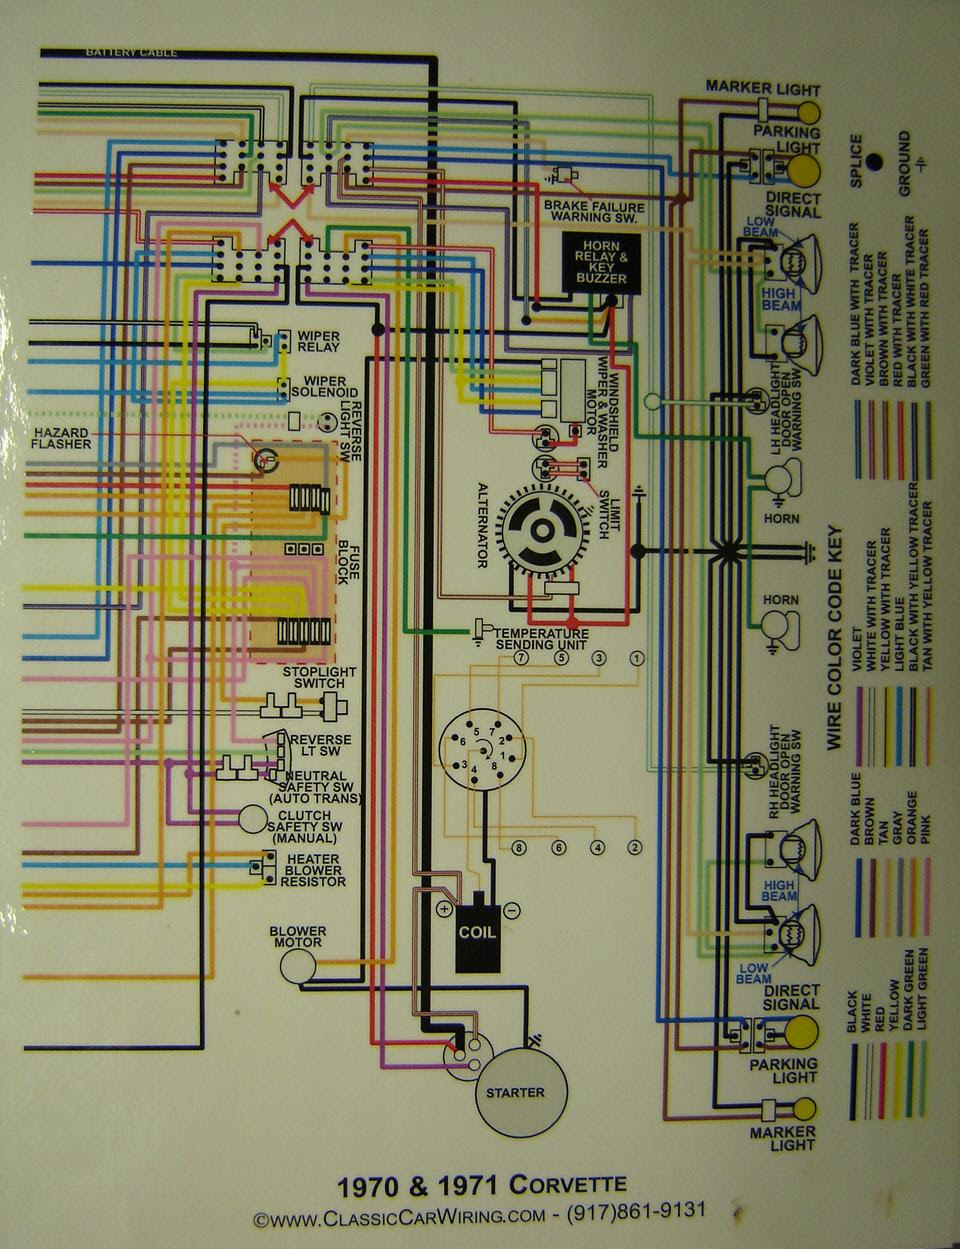 68 Chevelle Headlight Wiring Diagram Wiring Diagram View A View A Zaafran It